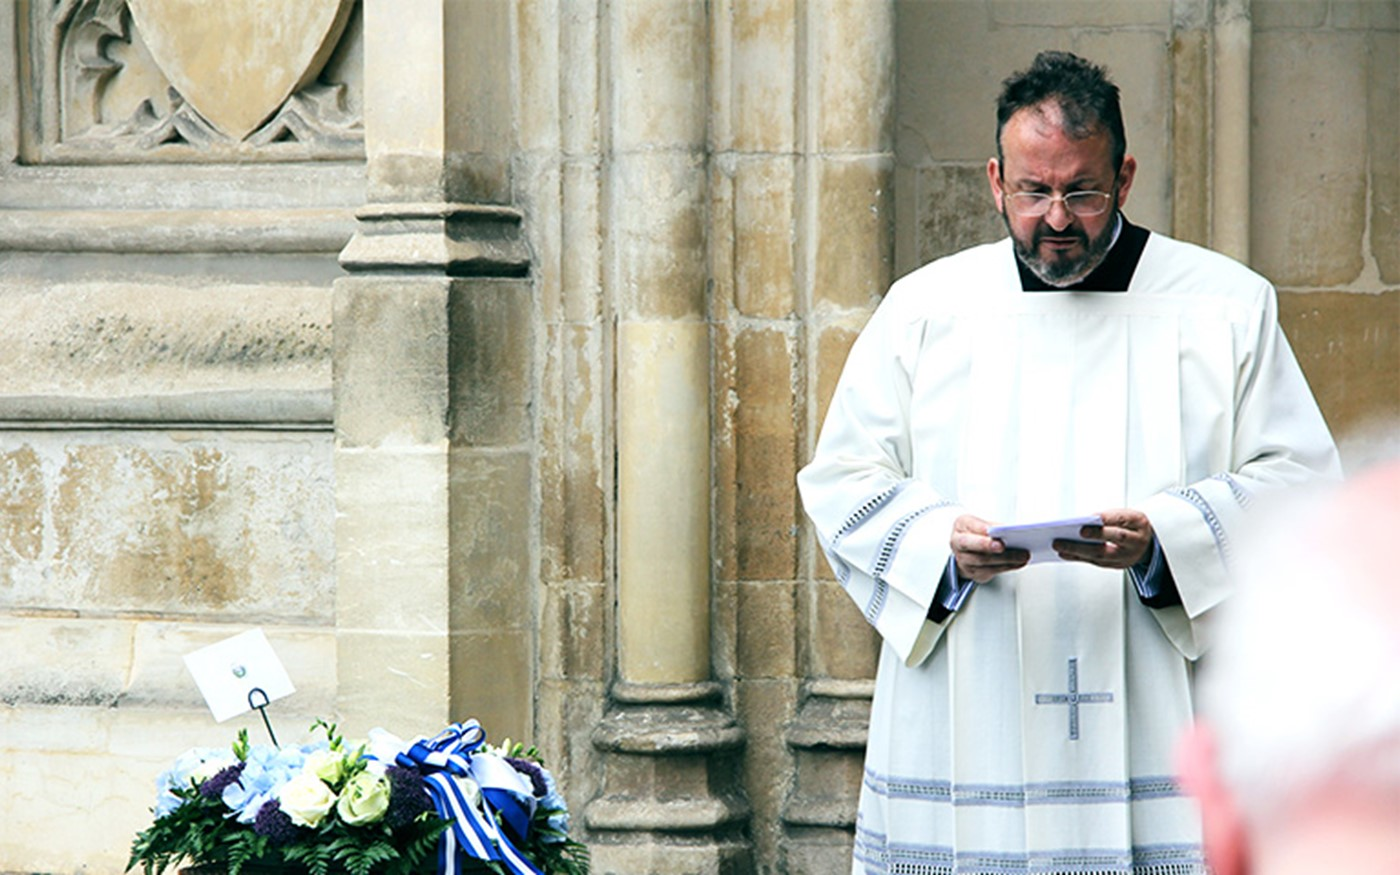 A wreath laying in memory of Saint Oscar Romero took place at Westminster Abbey on Tuesday 7th July